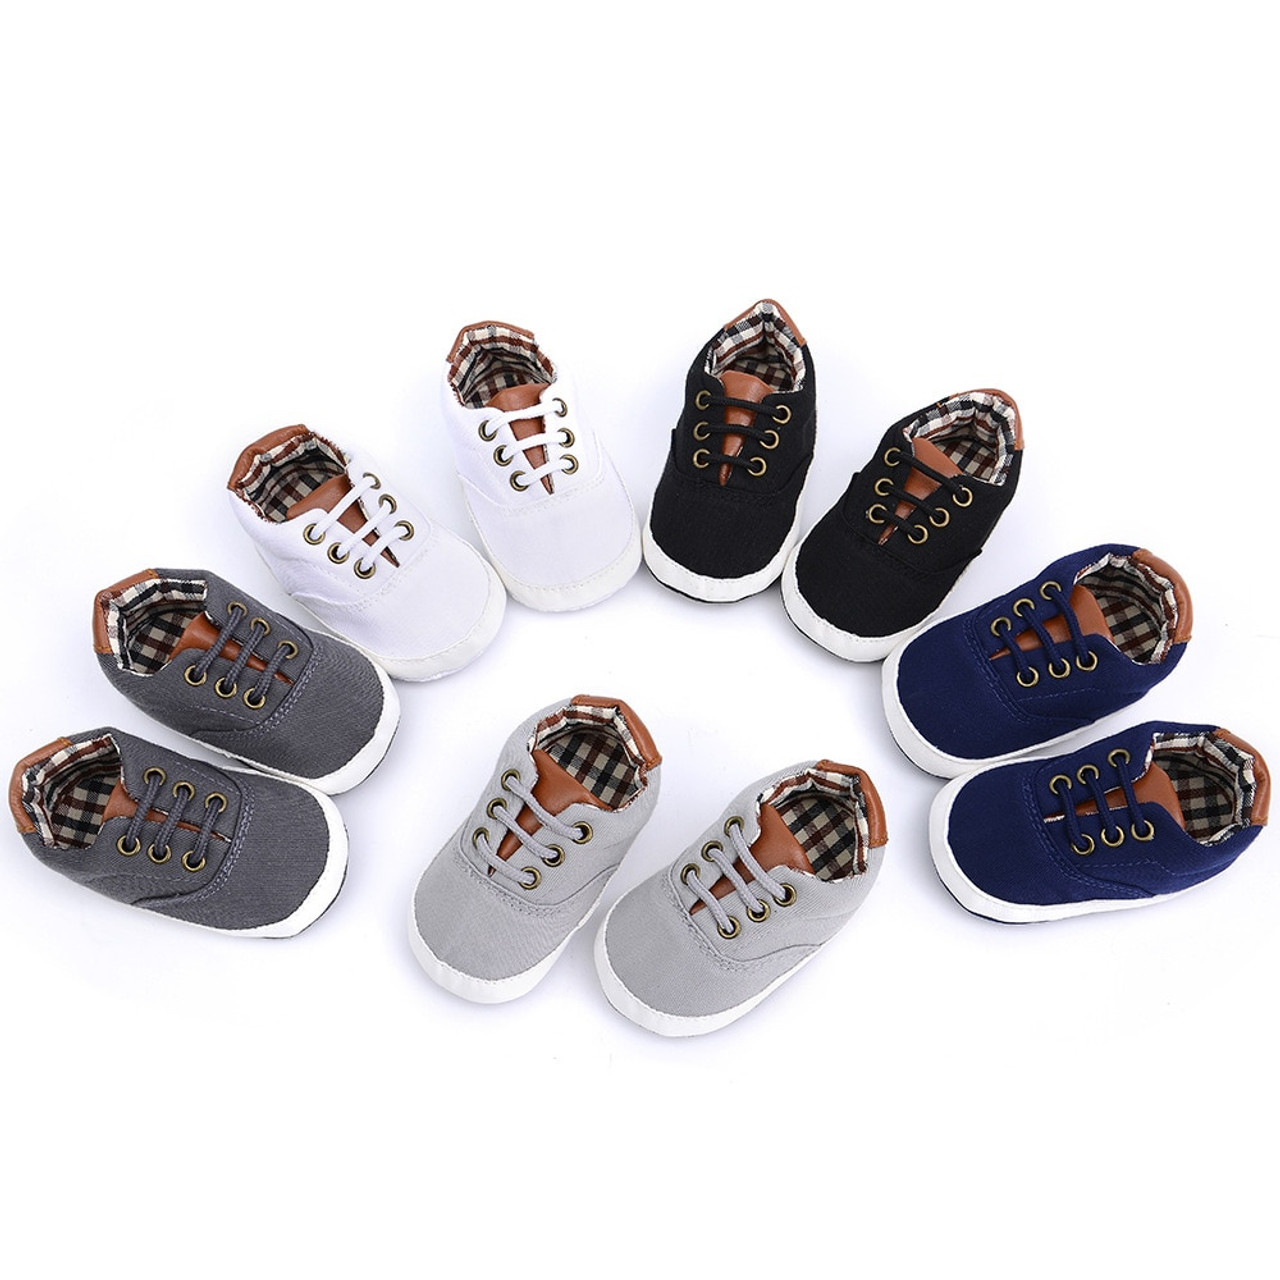 Newborn Baby Boys Kids Shoes Fashion Infant Toddler First Walkers Handsome  Bebe British Style Soft Soled ... 7fc26f3801f4